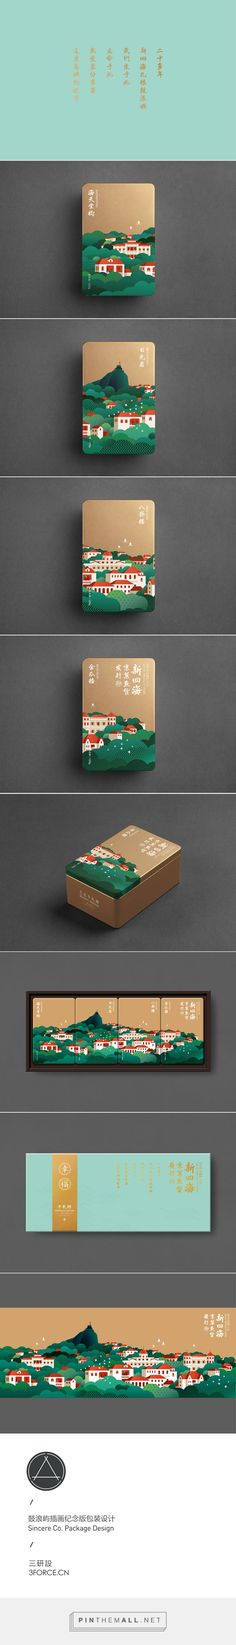 Sincere Co. Nougat Packaging / 新四海牛軋糖包裝設計 on Behance - created via https://pinthemall.net 鐵盒,握拳!